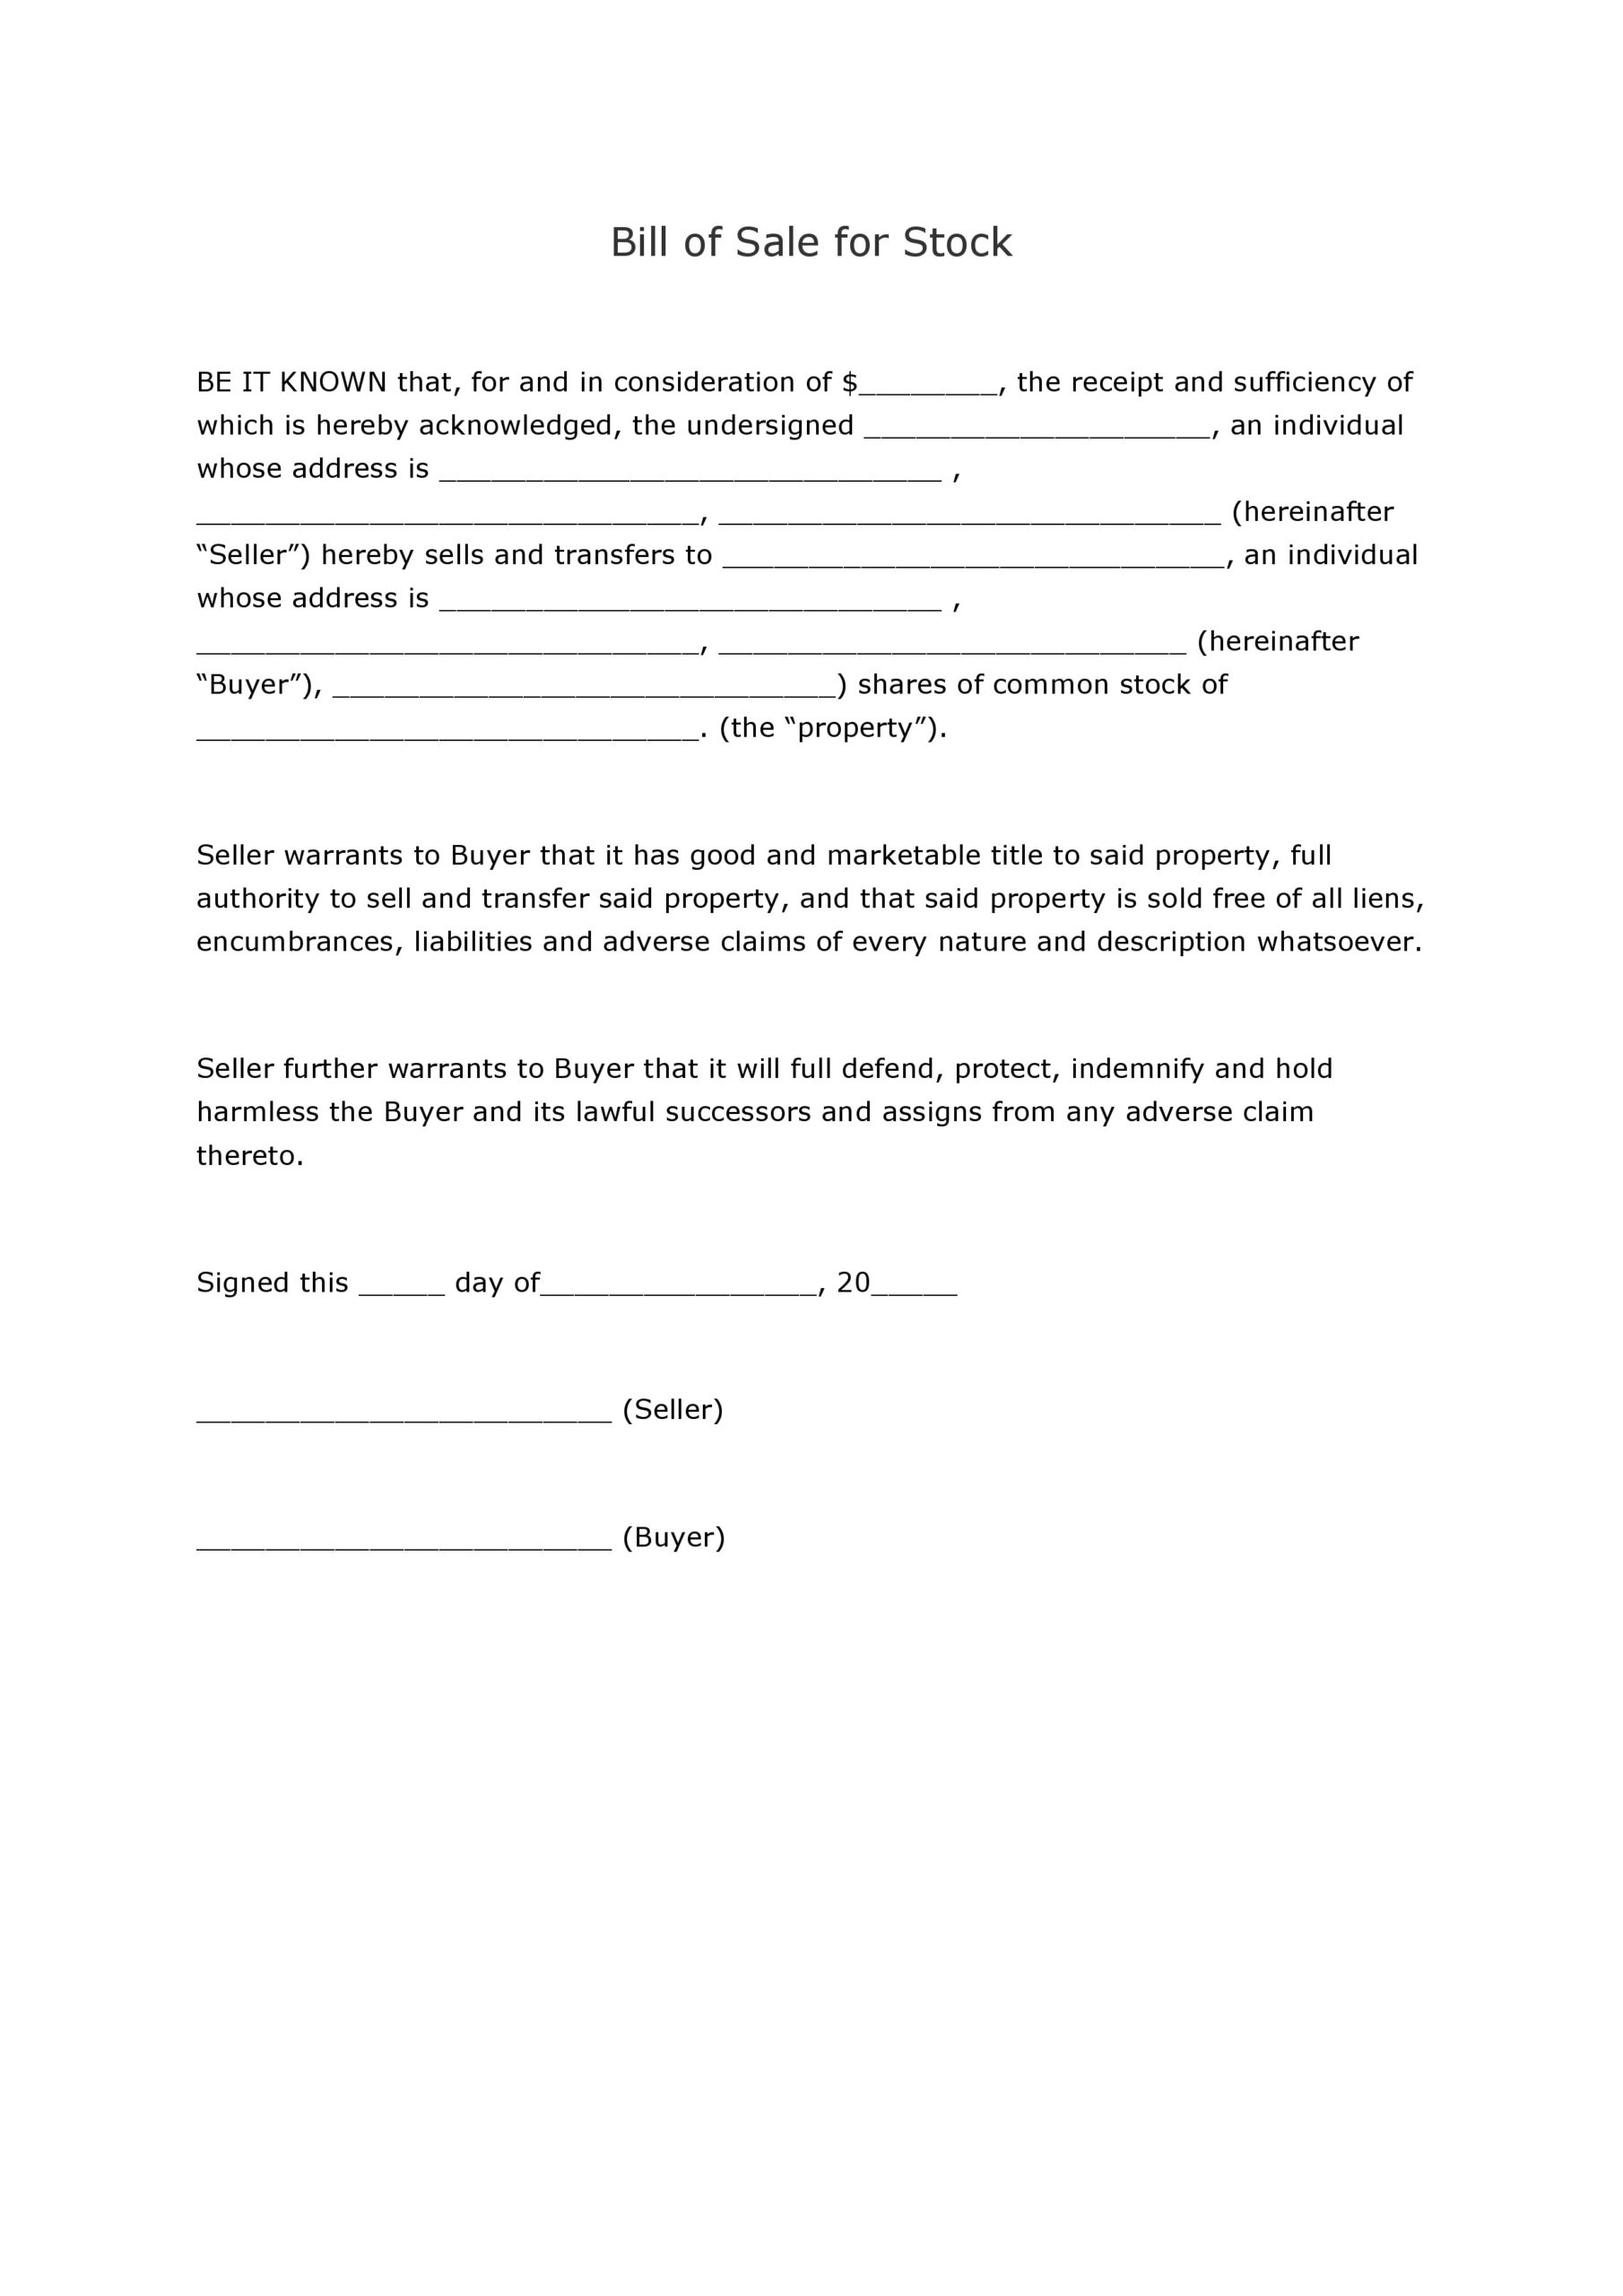 Free Bill Of Sale For Stock | Pdf | Docx